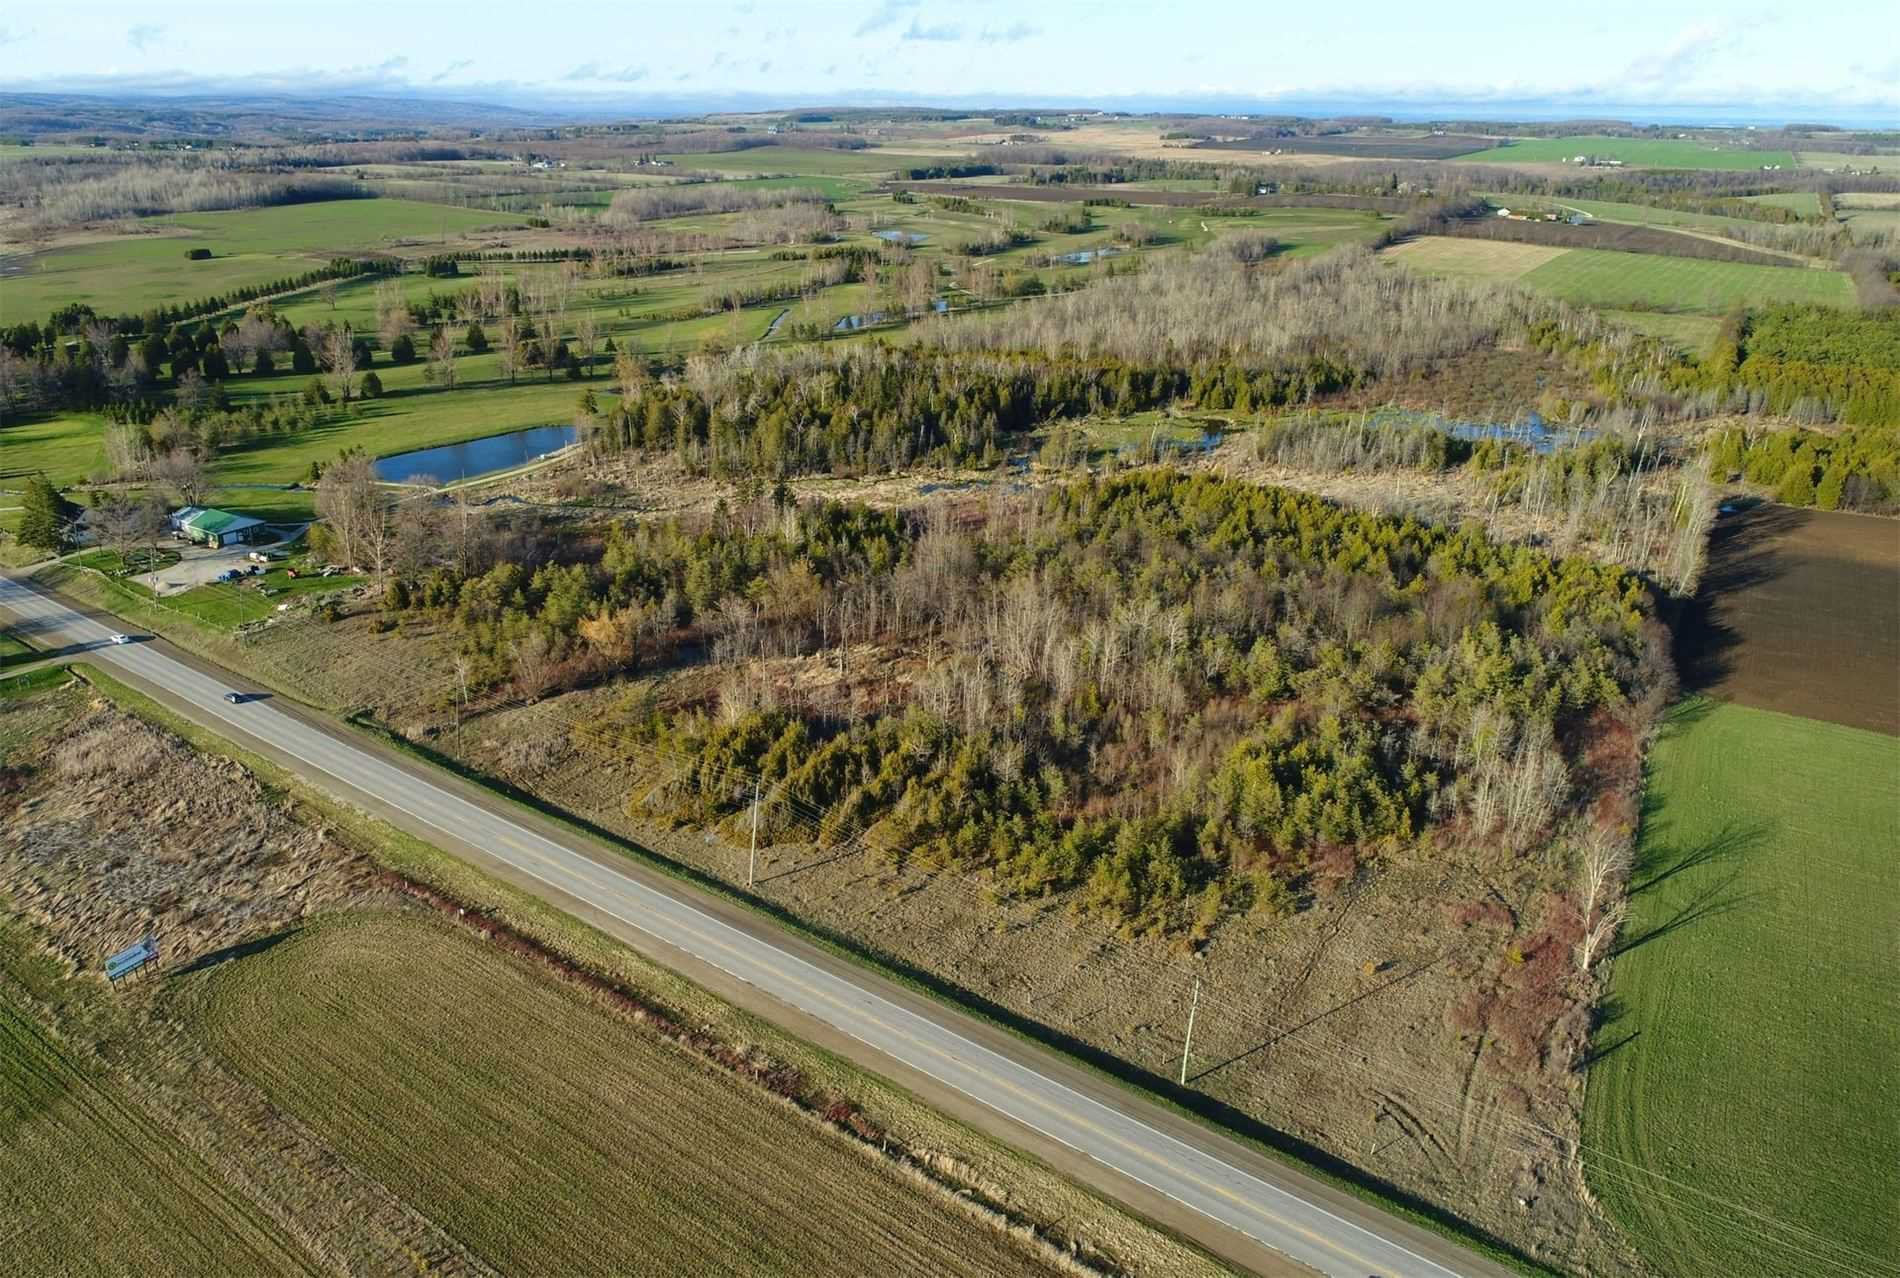 Main Photo: Pt Lt 7 Hwy 124 in Melancthon: Rural Melancthon Property for sale : MLS®# X4759358